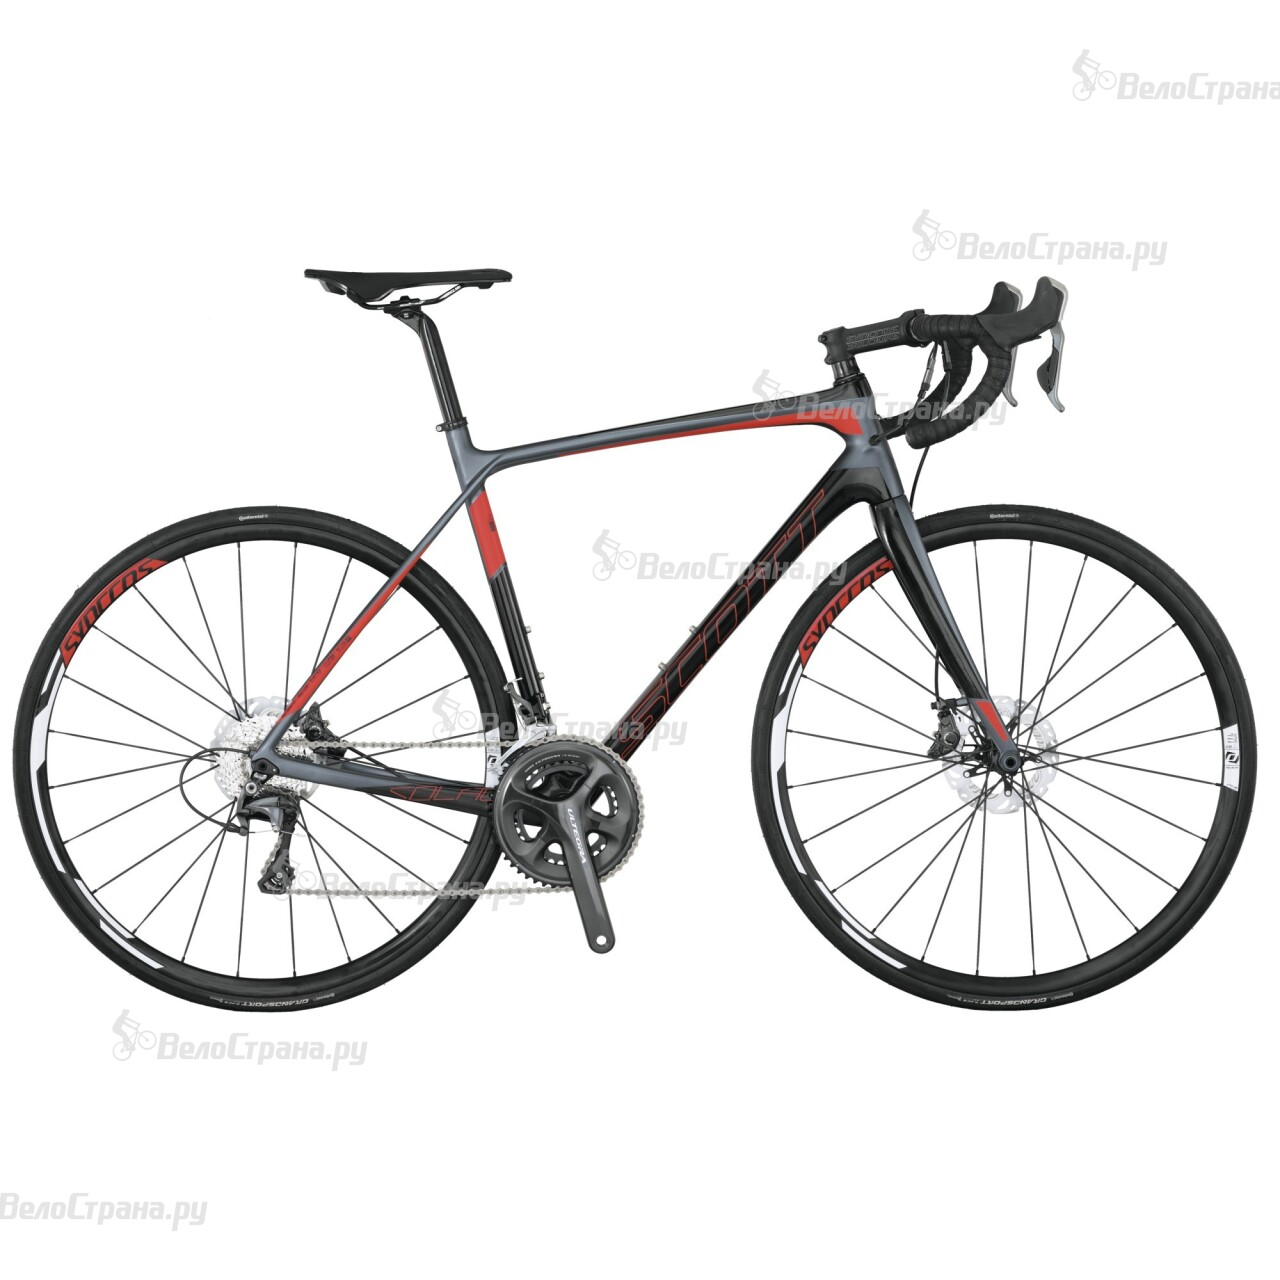 Велосипед Scott Solace 15 Disc (2015) велосипед scott solace 30 2015